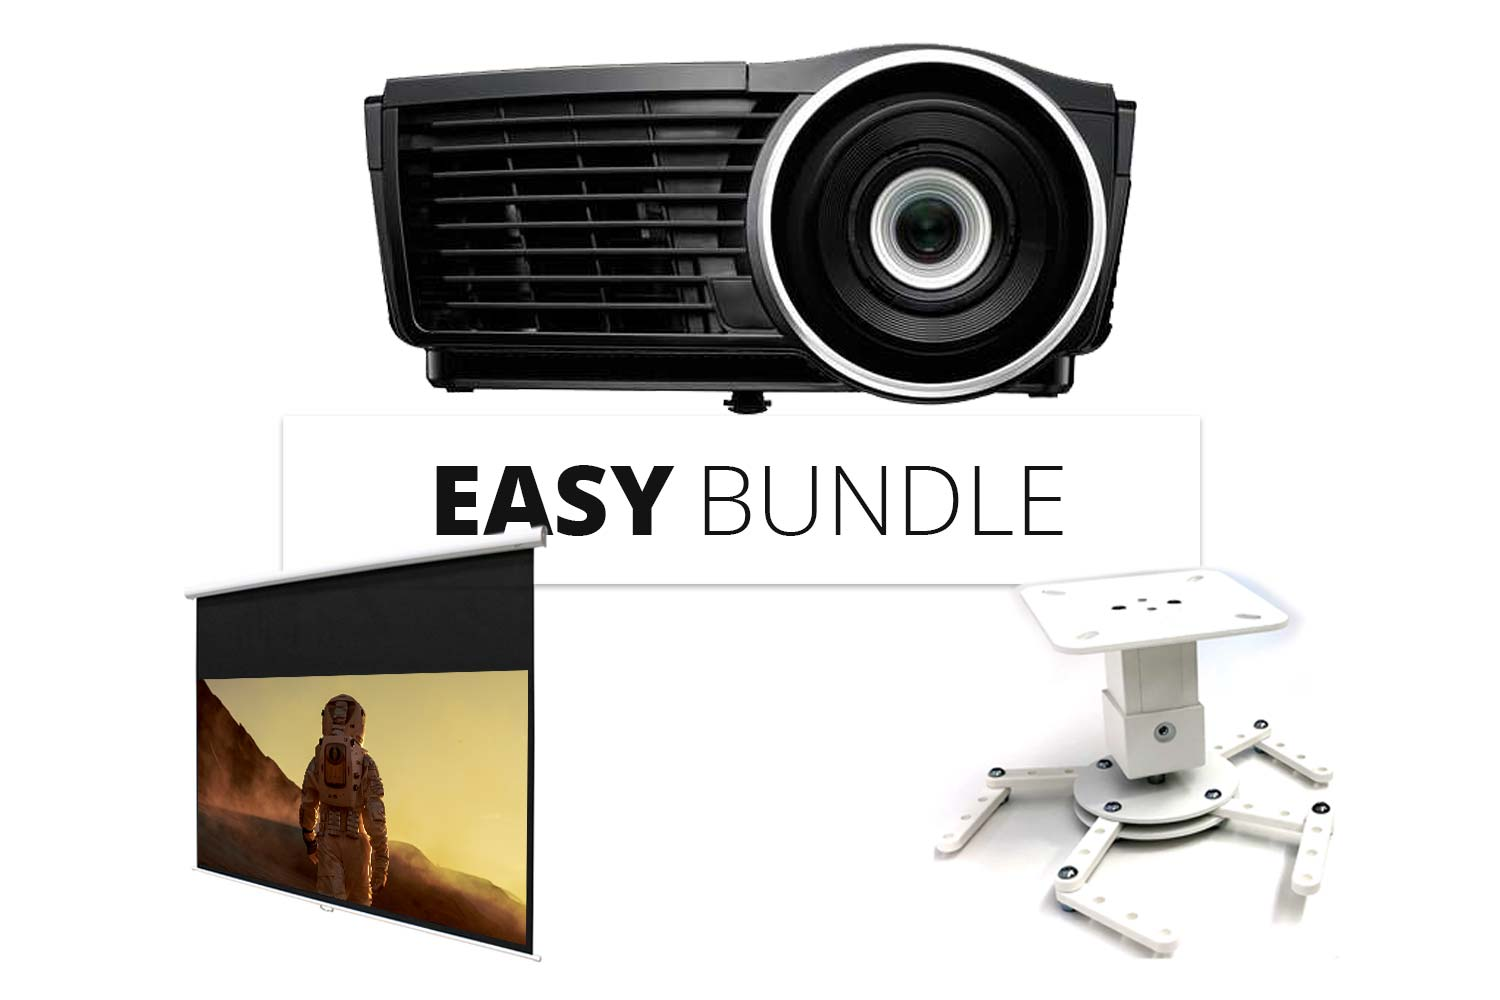 EASY BUNDLE - BEAMER + LEINWAND + HALTERUNG